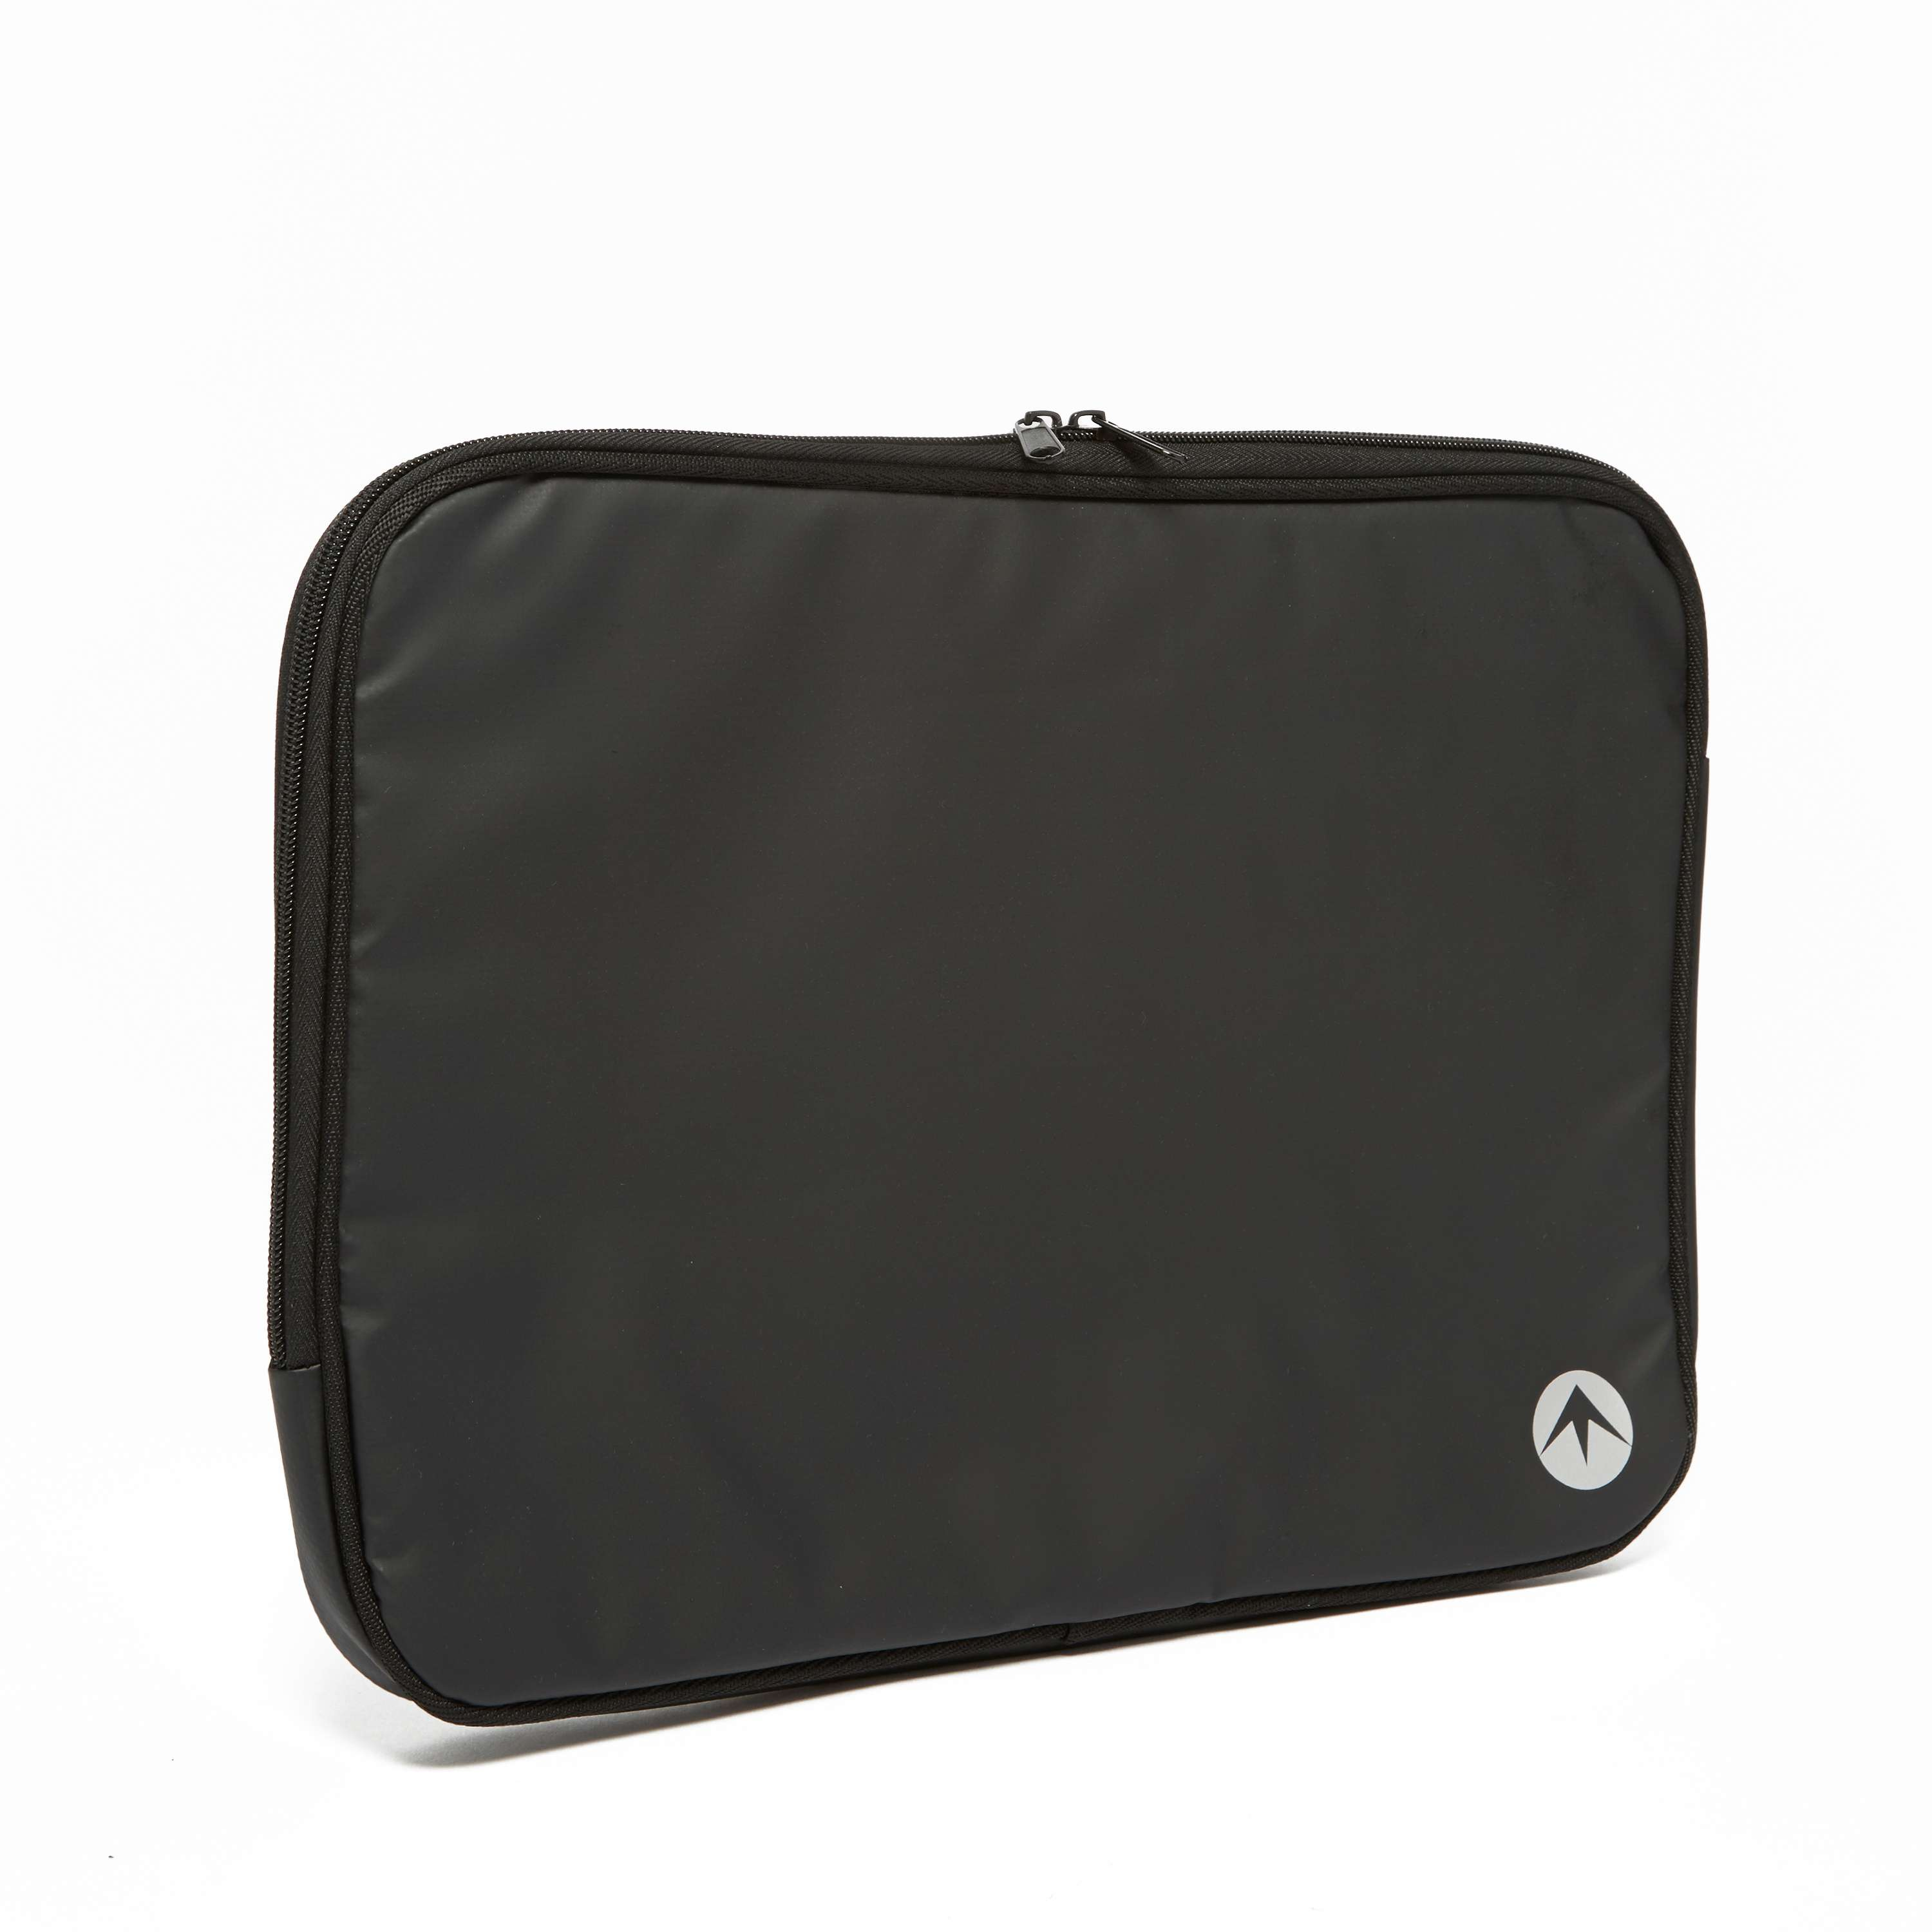 BLACKS Stuffbag Laptop Case